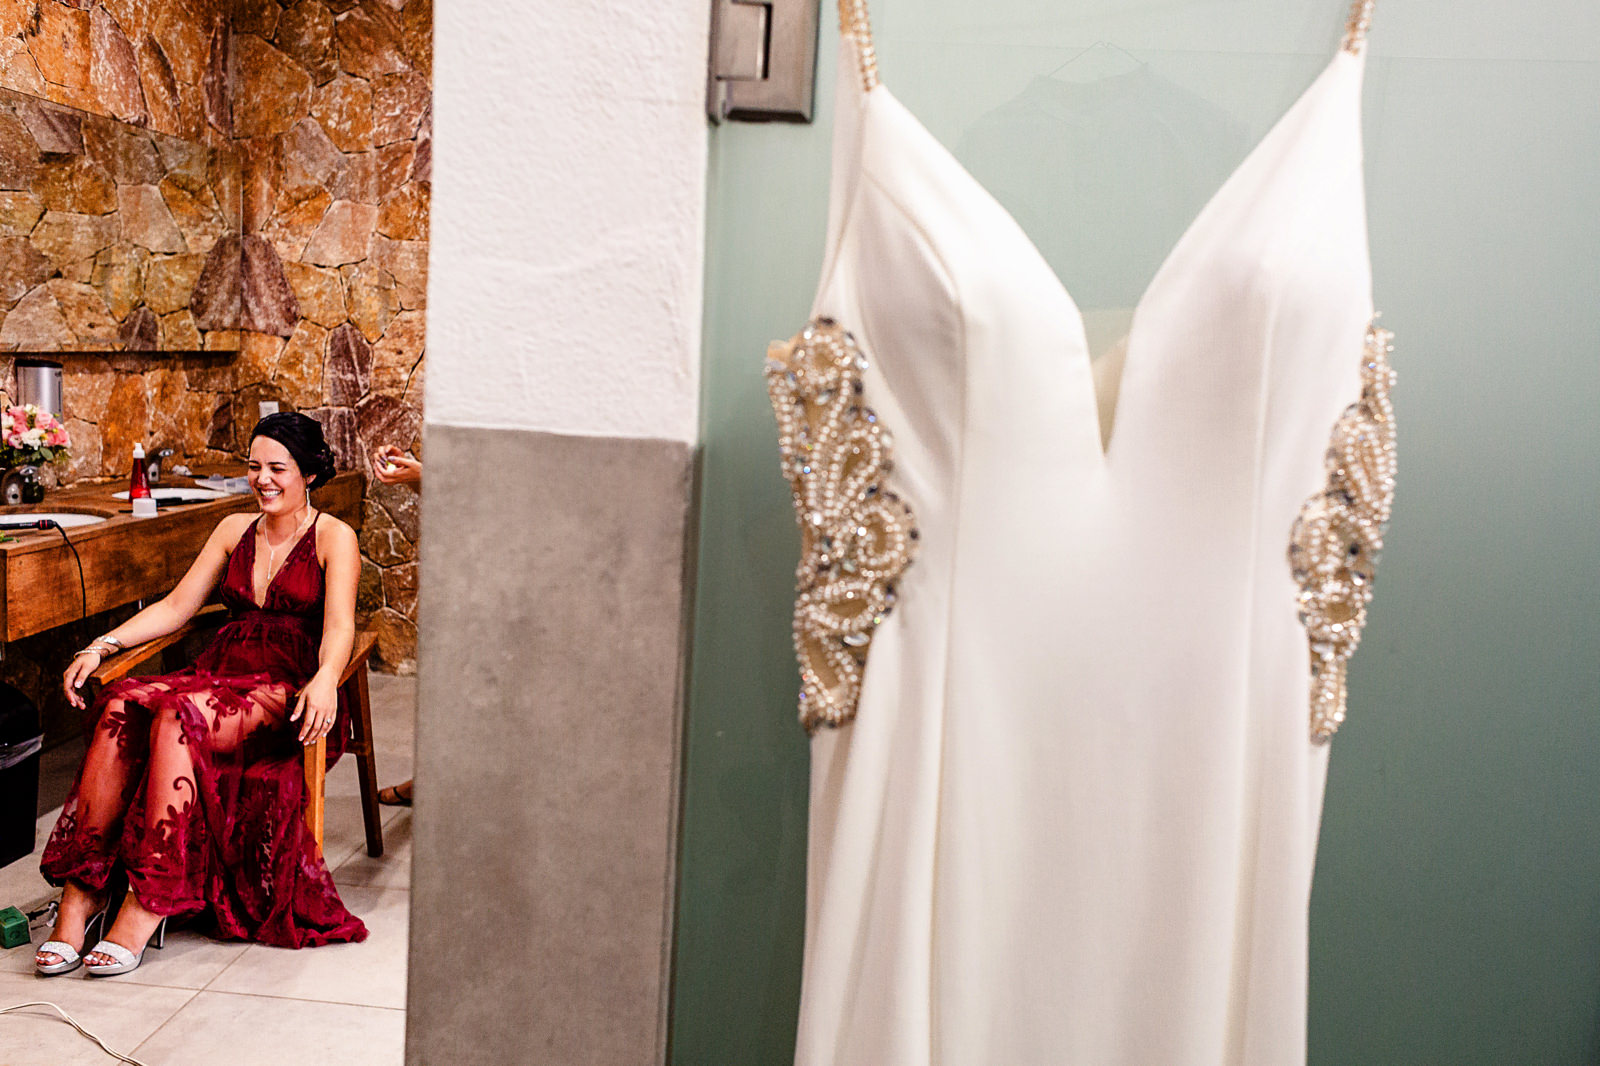 Bride laughing while getting ready at the bathroom in La Patrona beach club, her wedding dress is hanging before her.